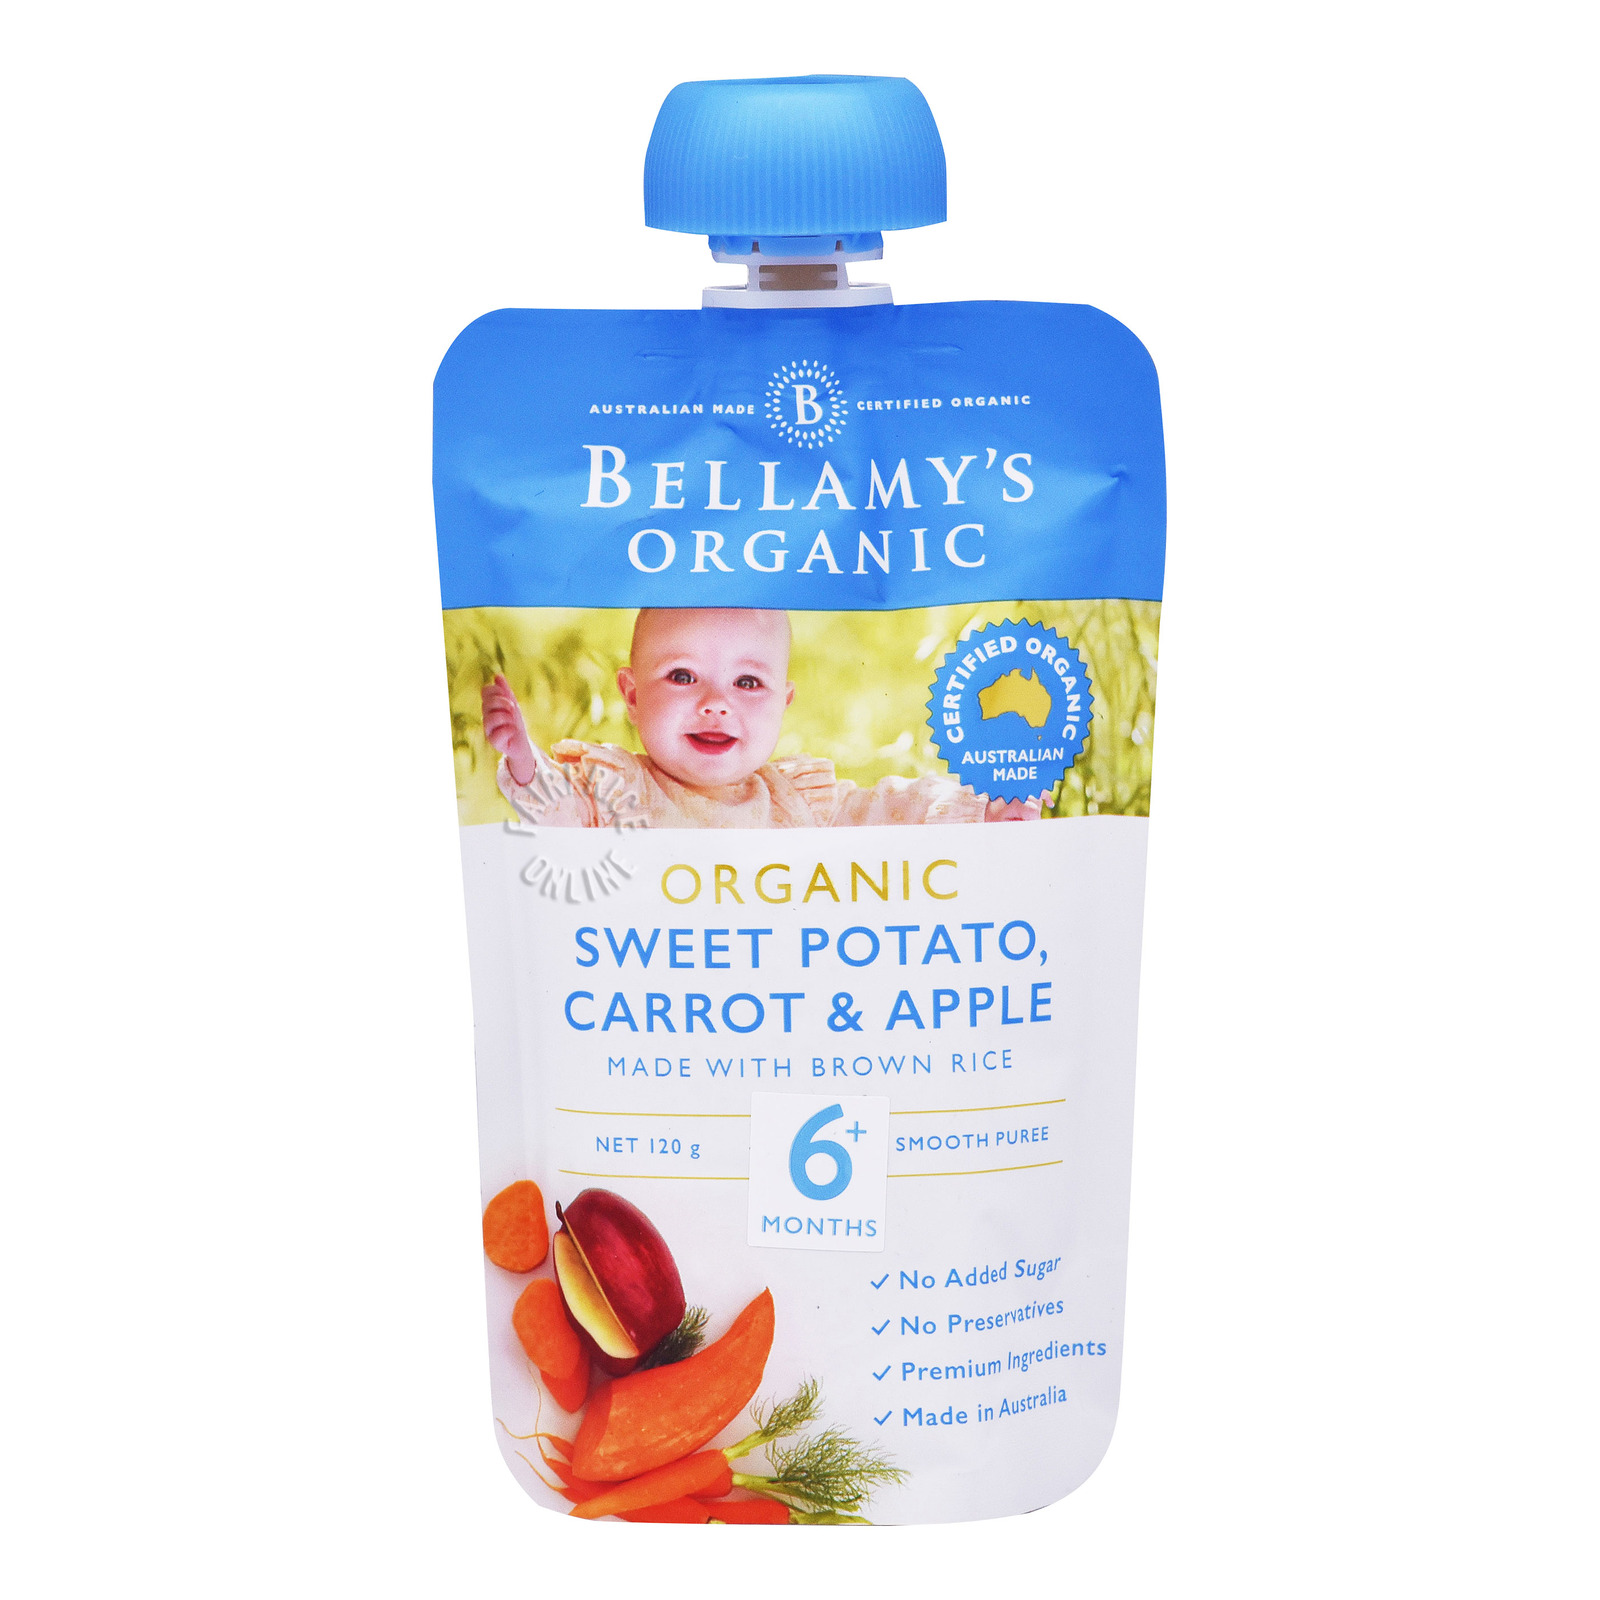 Bellamy's Organic Baby Snack - Sweet Potato, Carrot & Apple